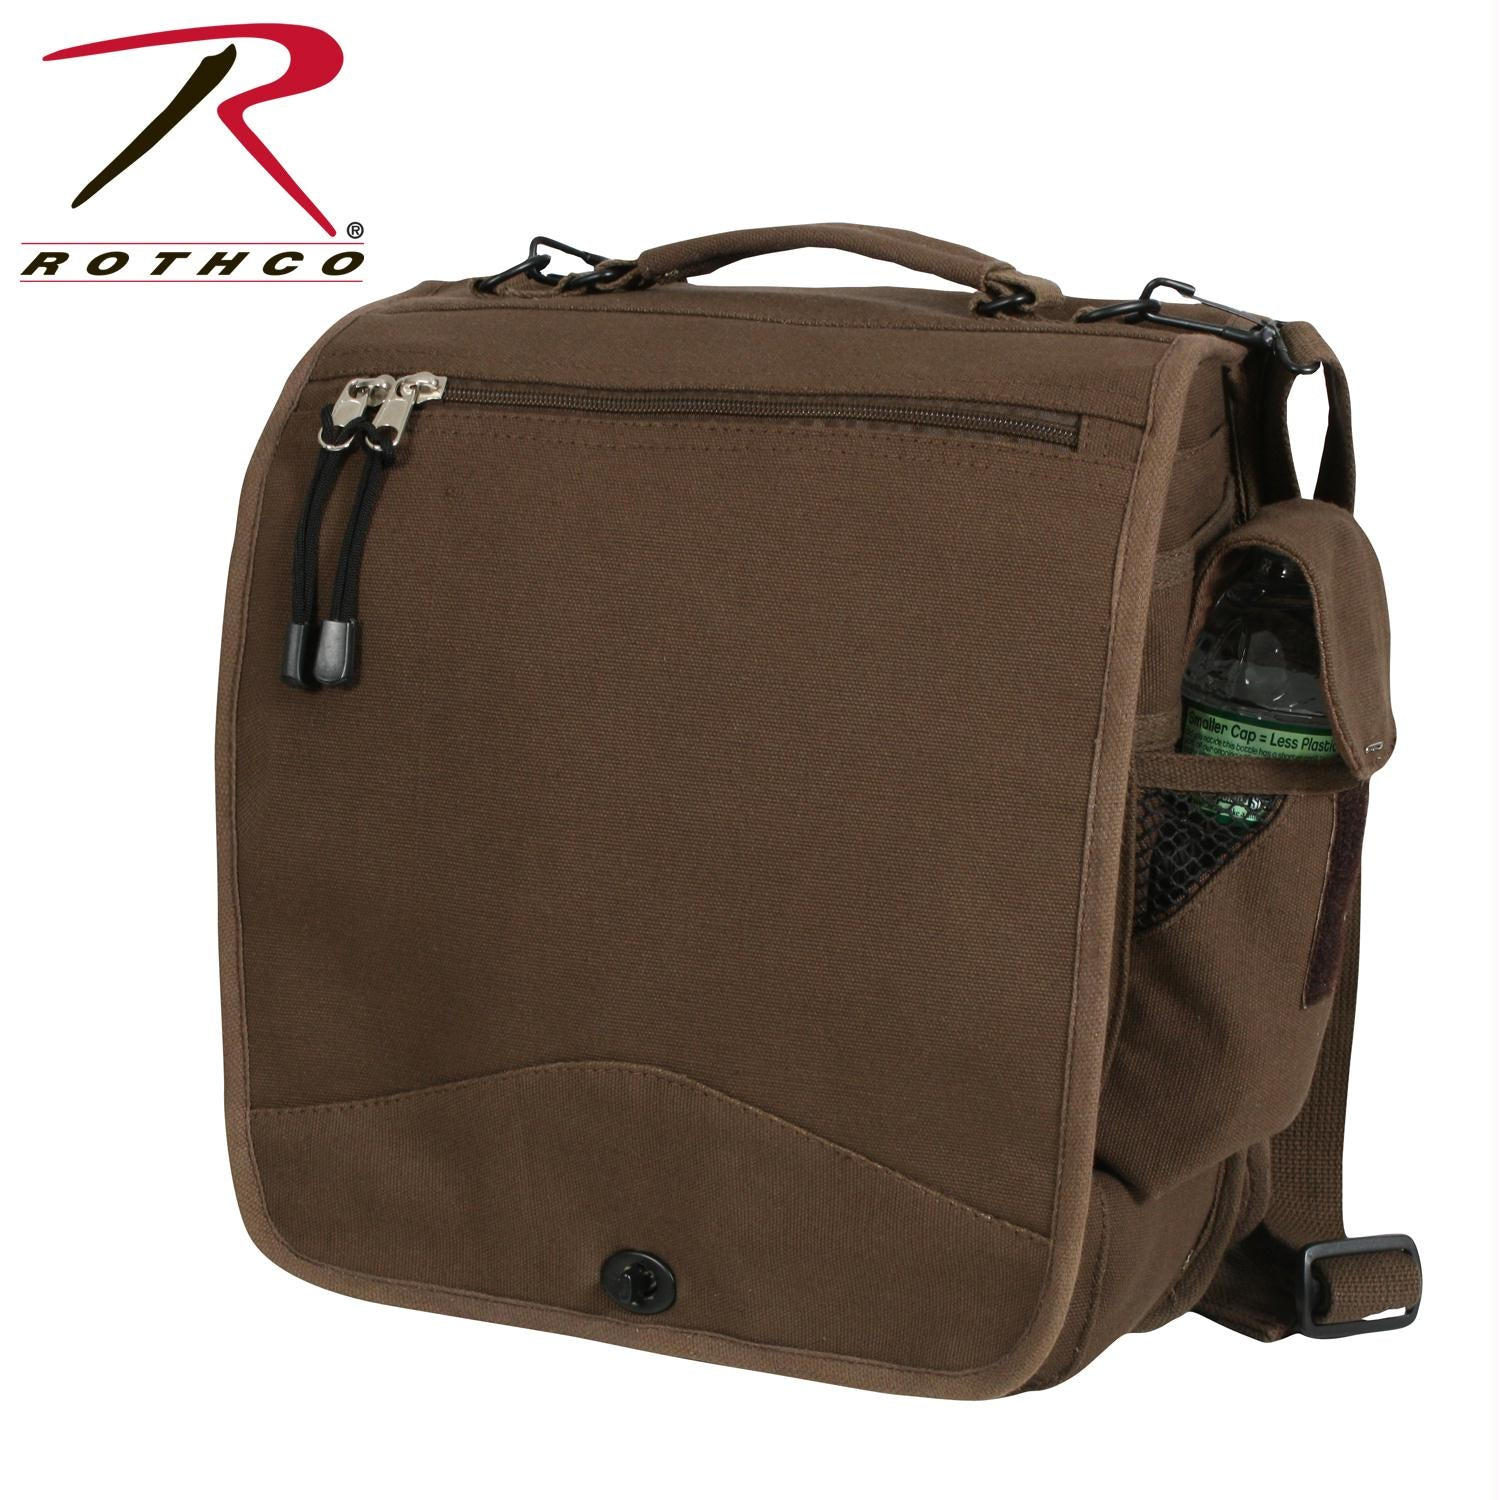 Rothco Canvas M-51 Engineers Field Bag